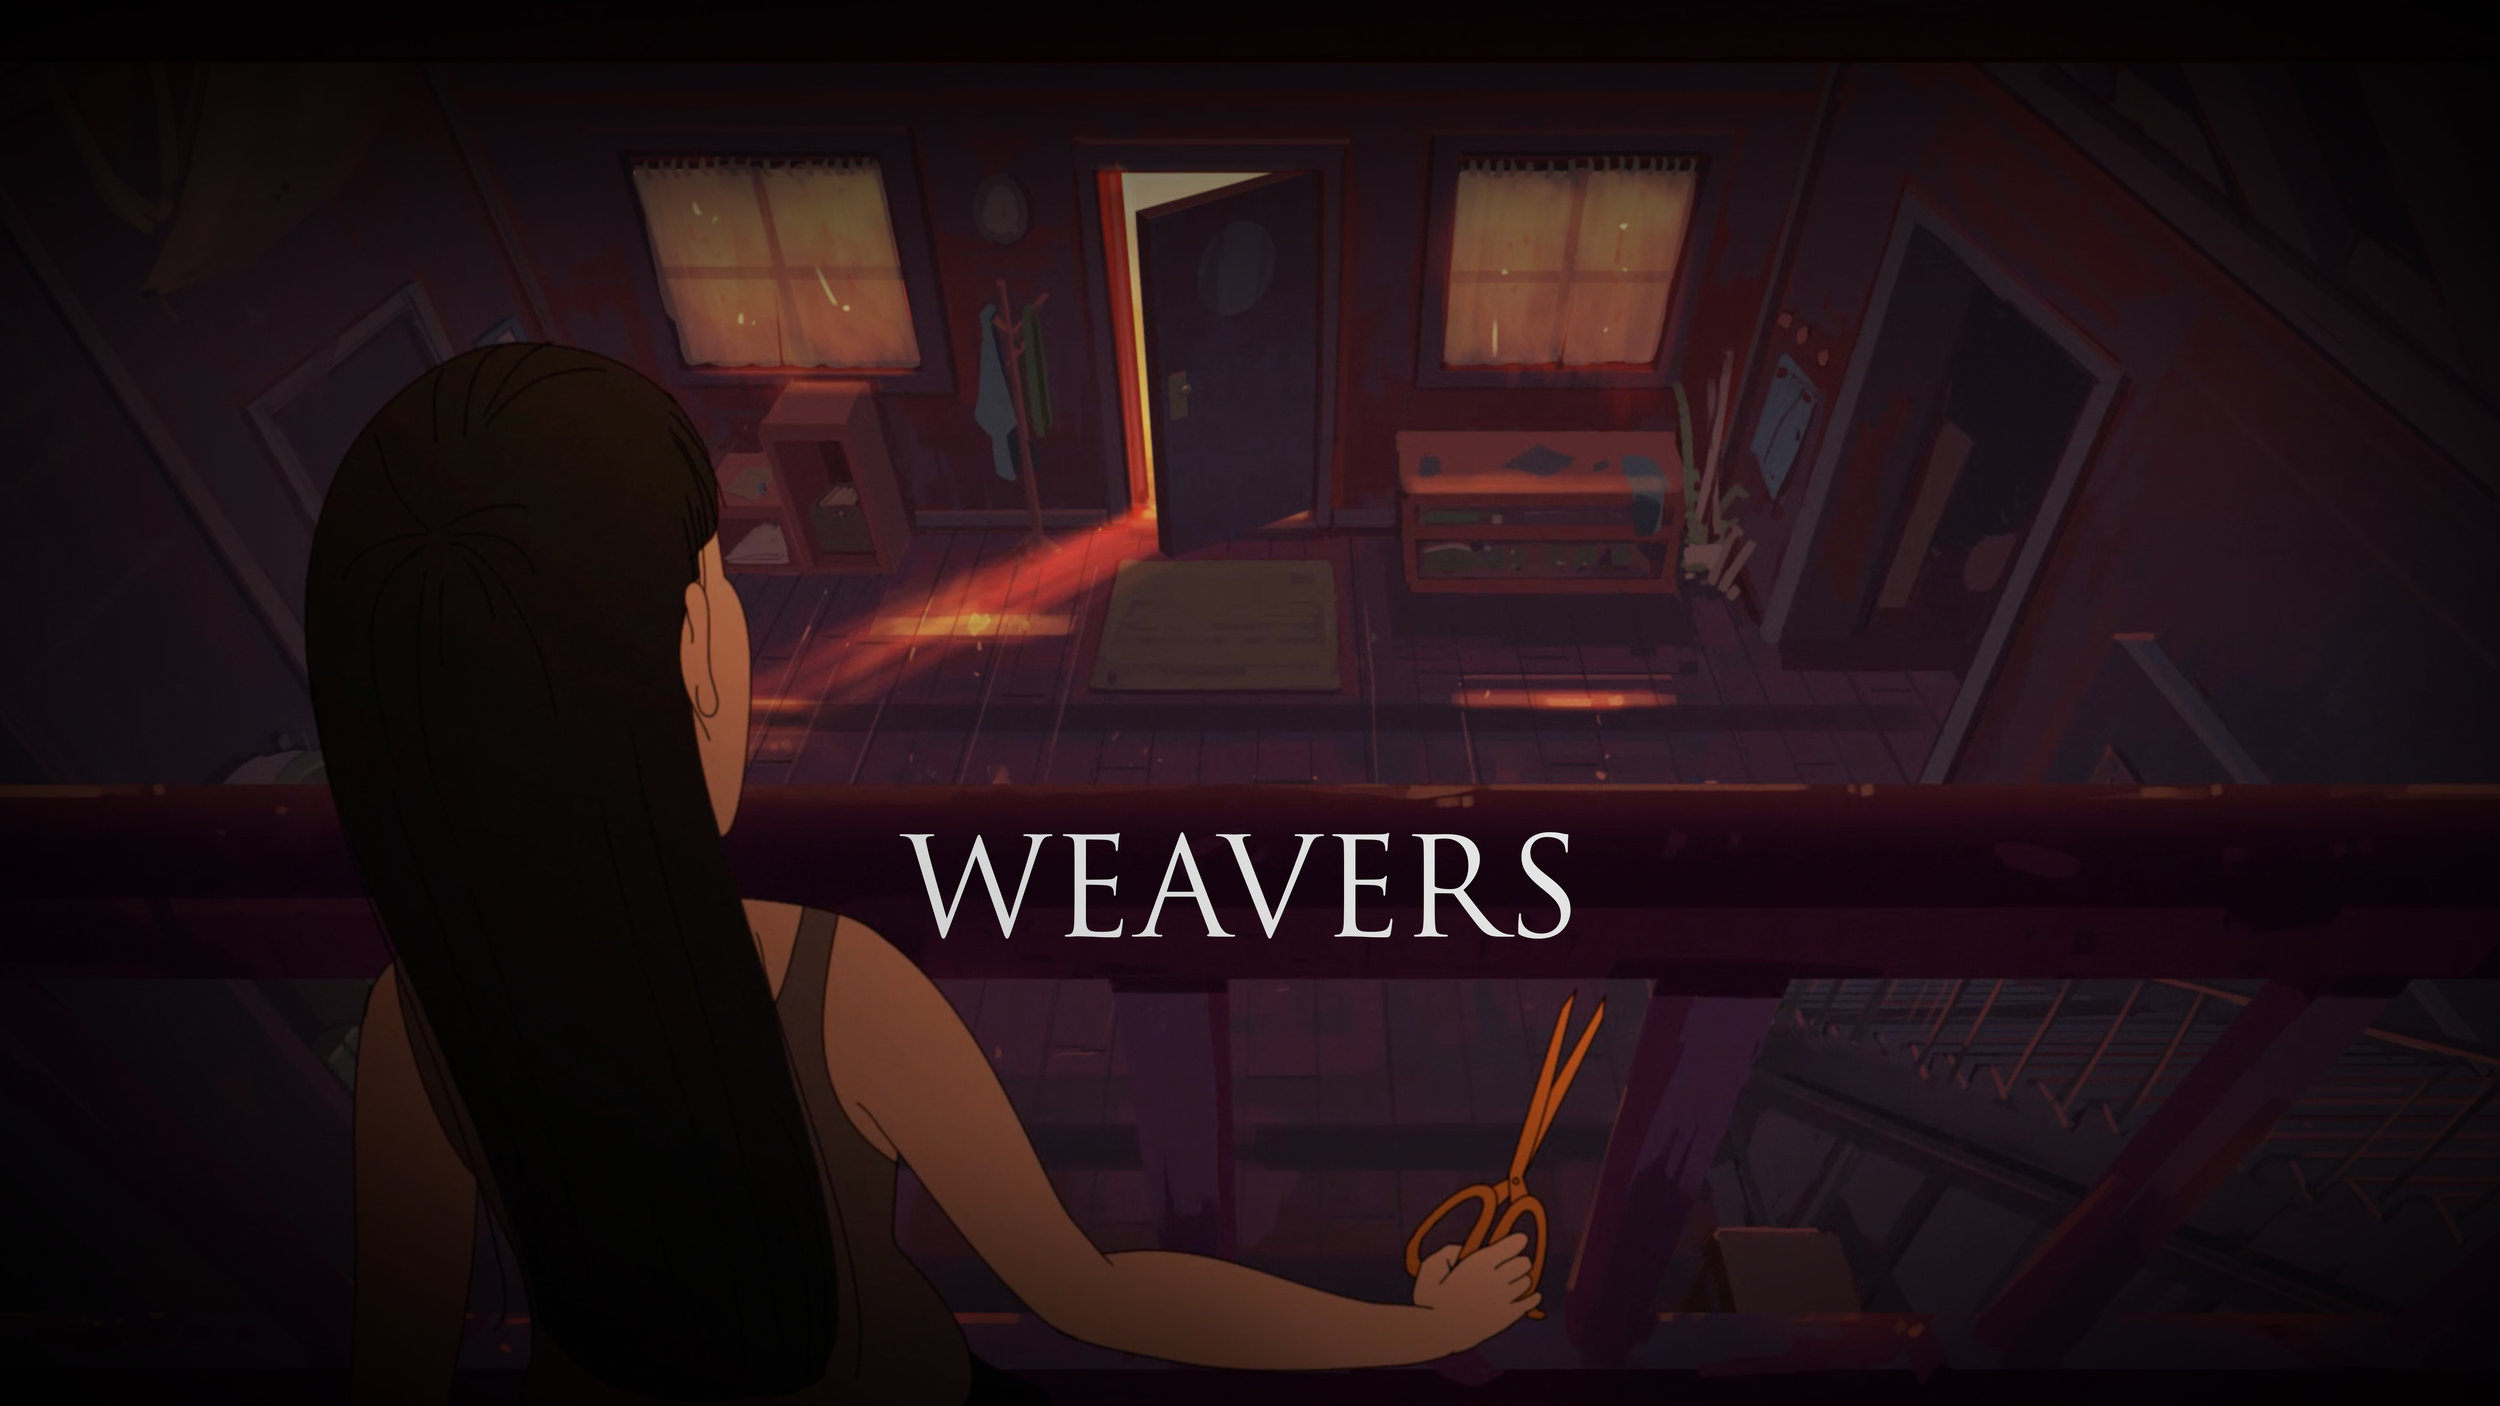 Weavers - 2017 short film personal project